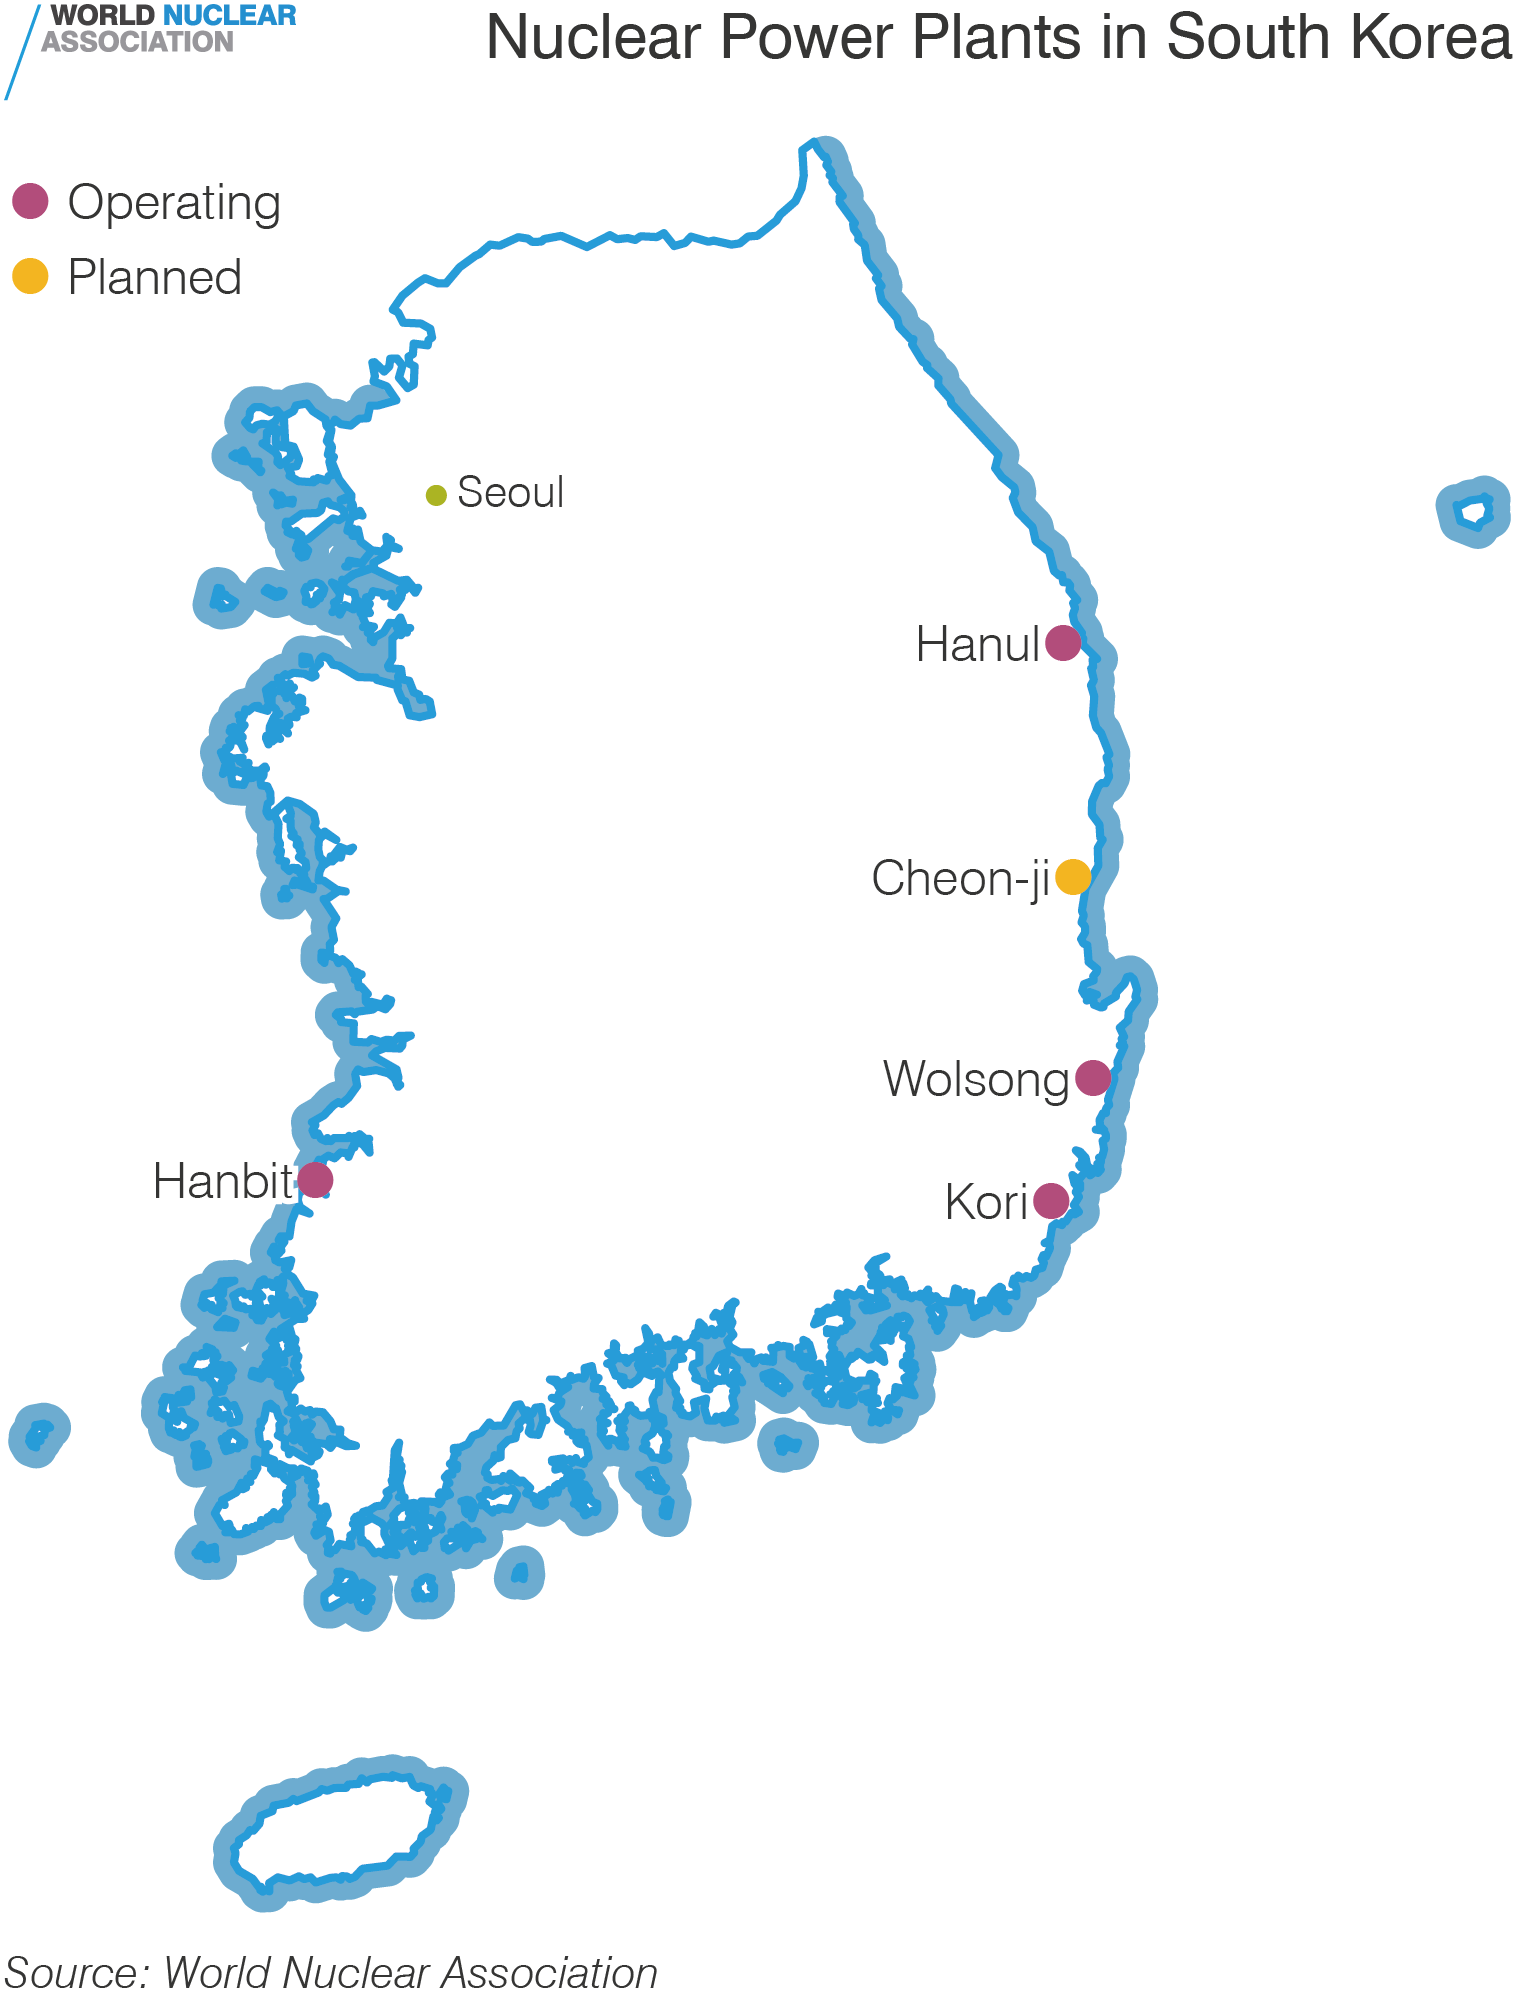 Nuclear Power Plants in South Korea